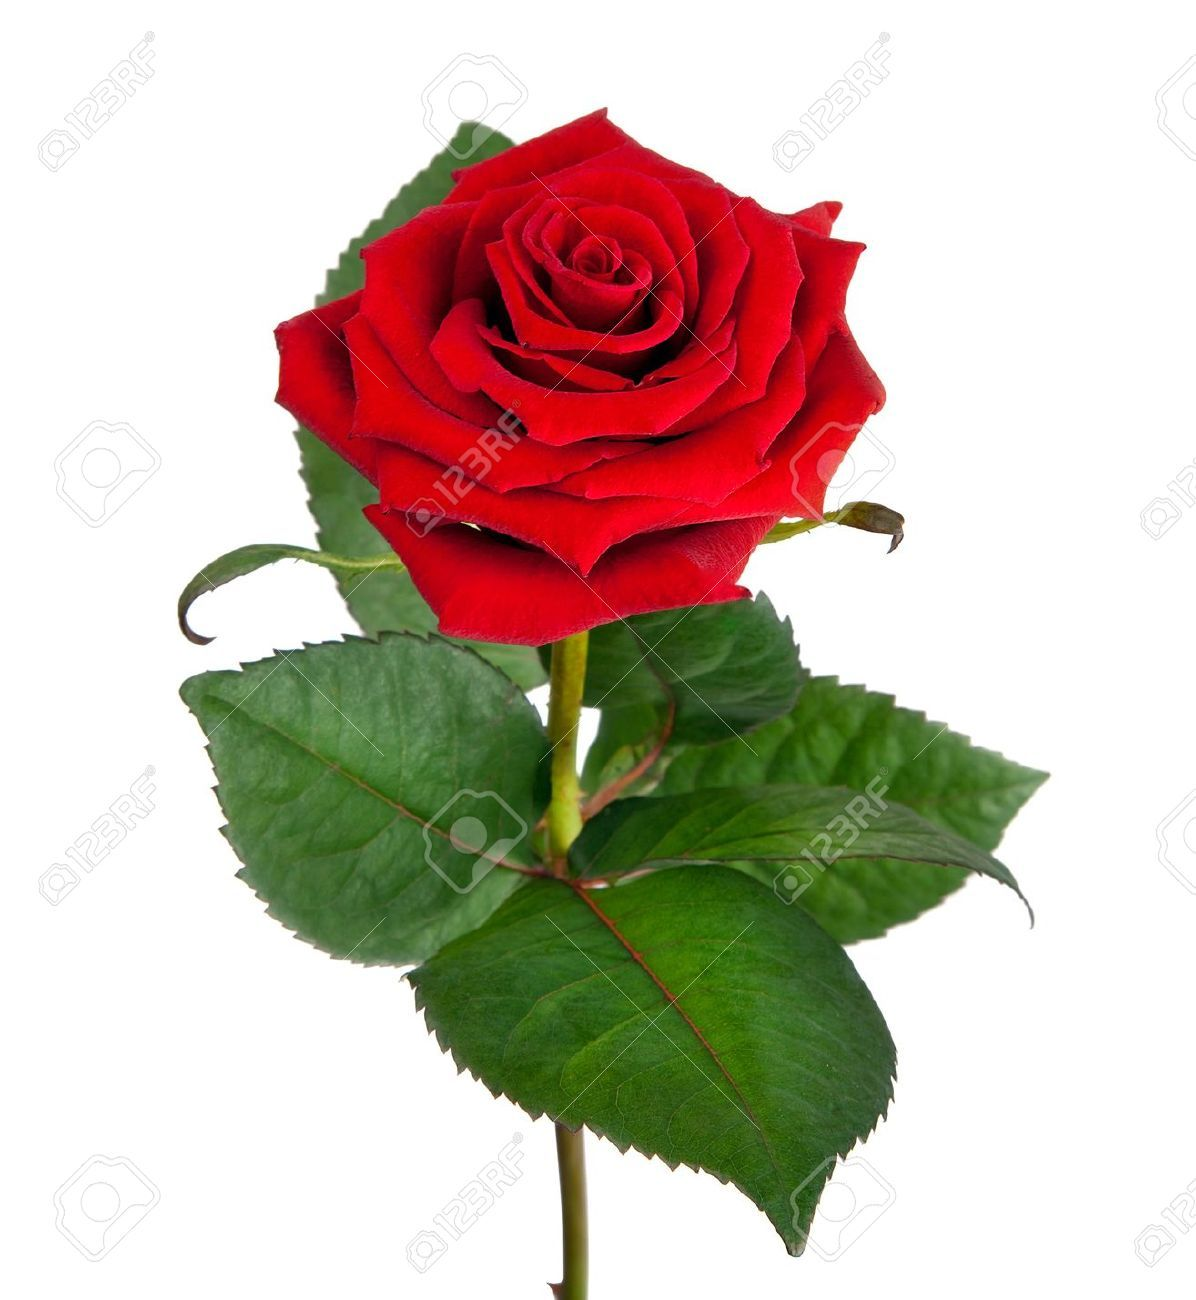 13432980 Single Beautiful Red Rose Isolated On White Background Stock Photo Jpg 1 196 1 300 Pixels Flores Rosas Fotos